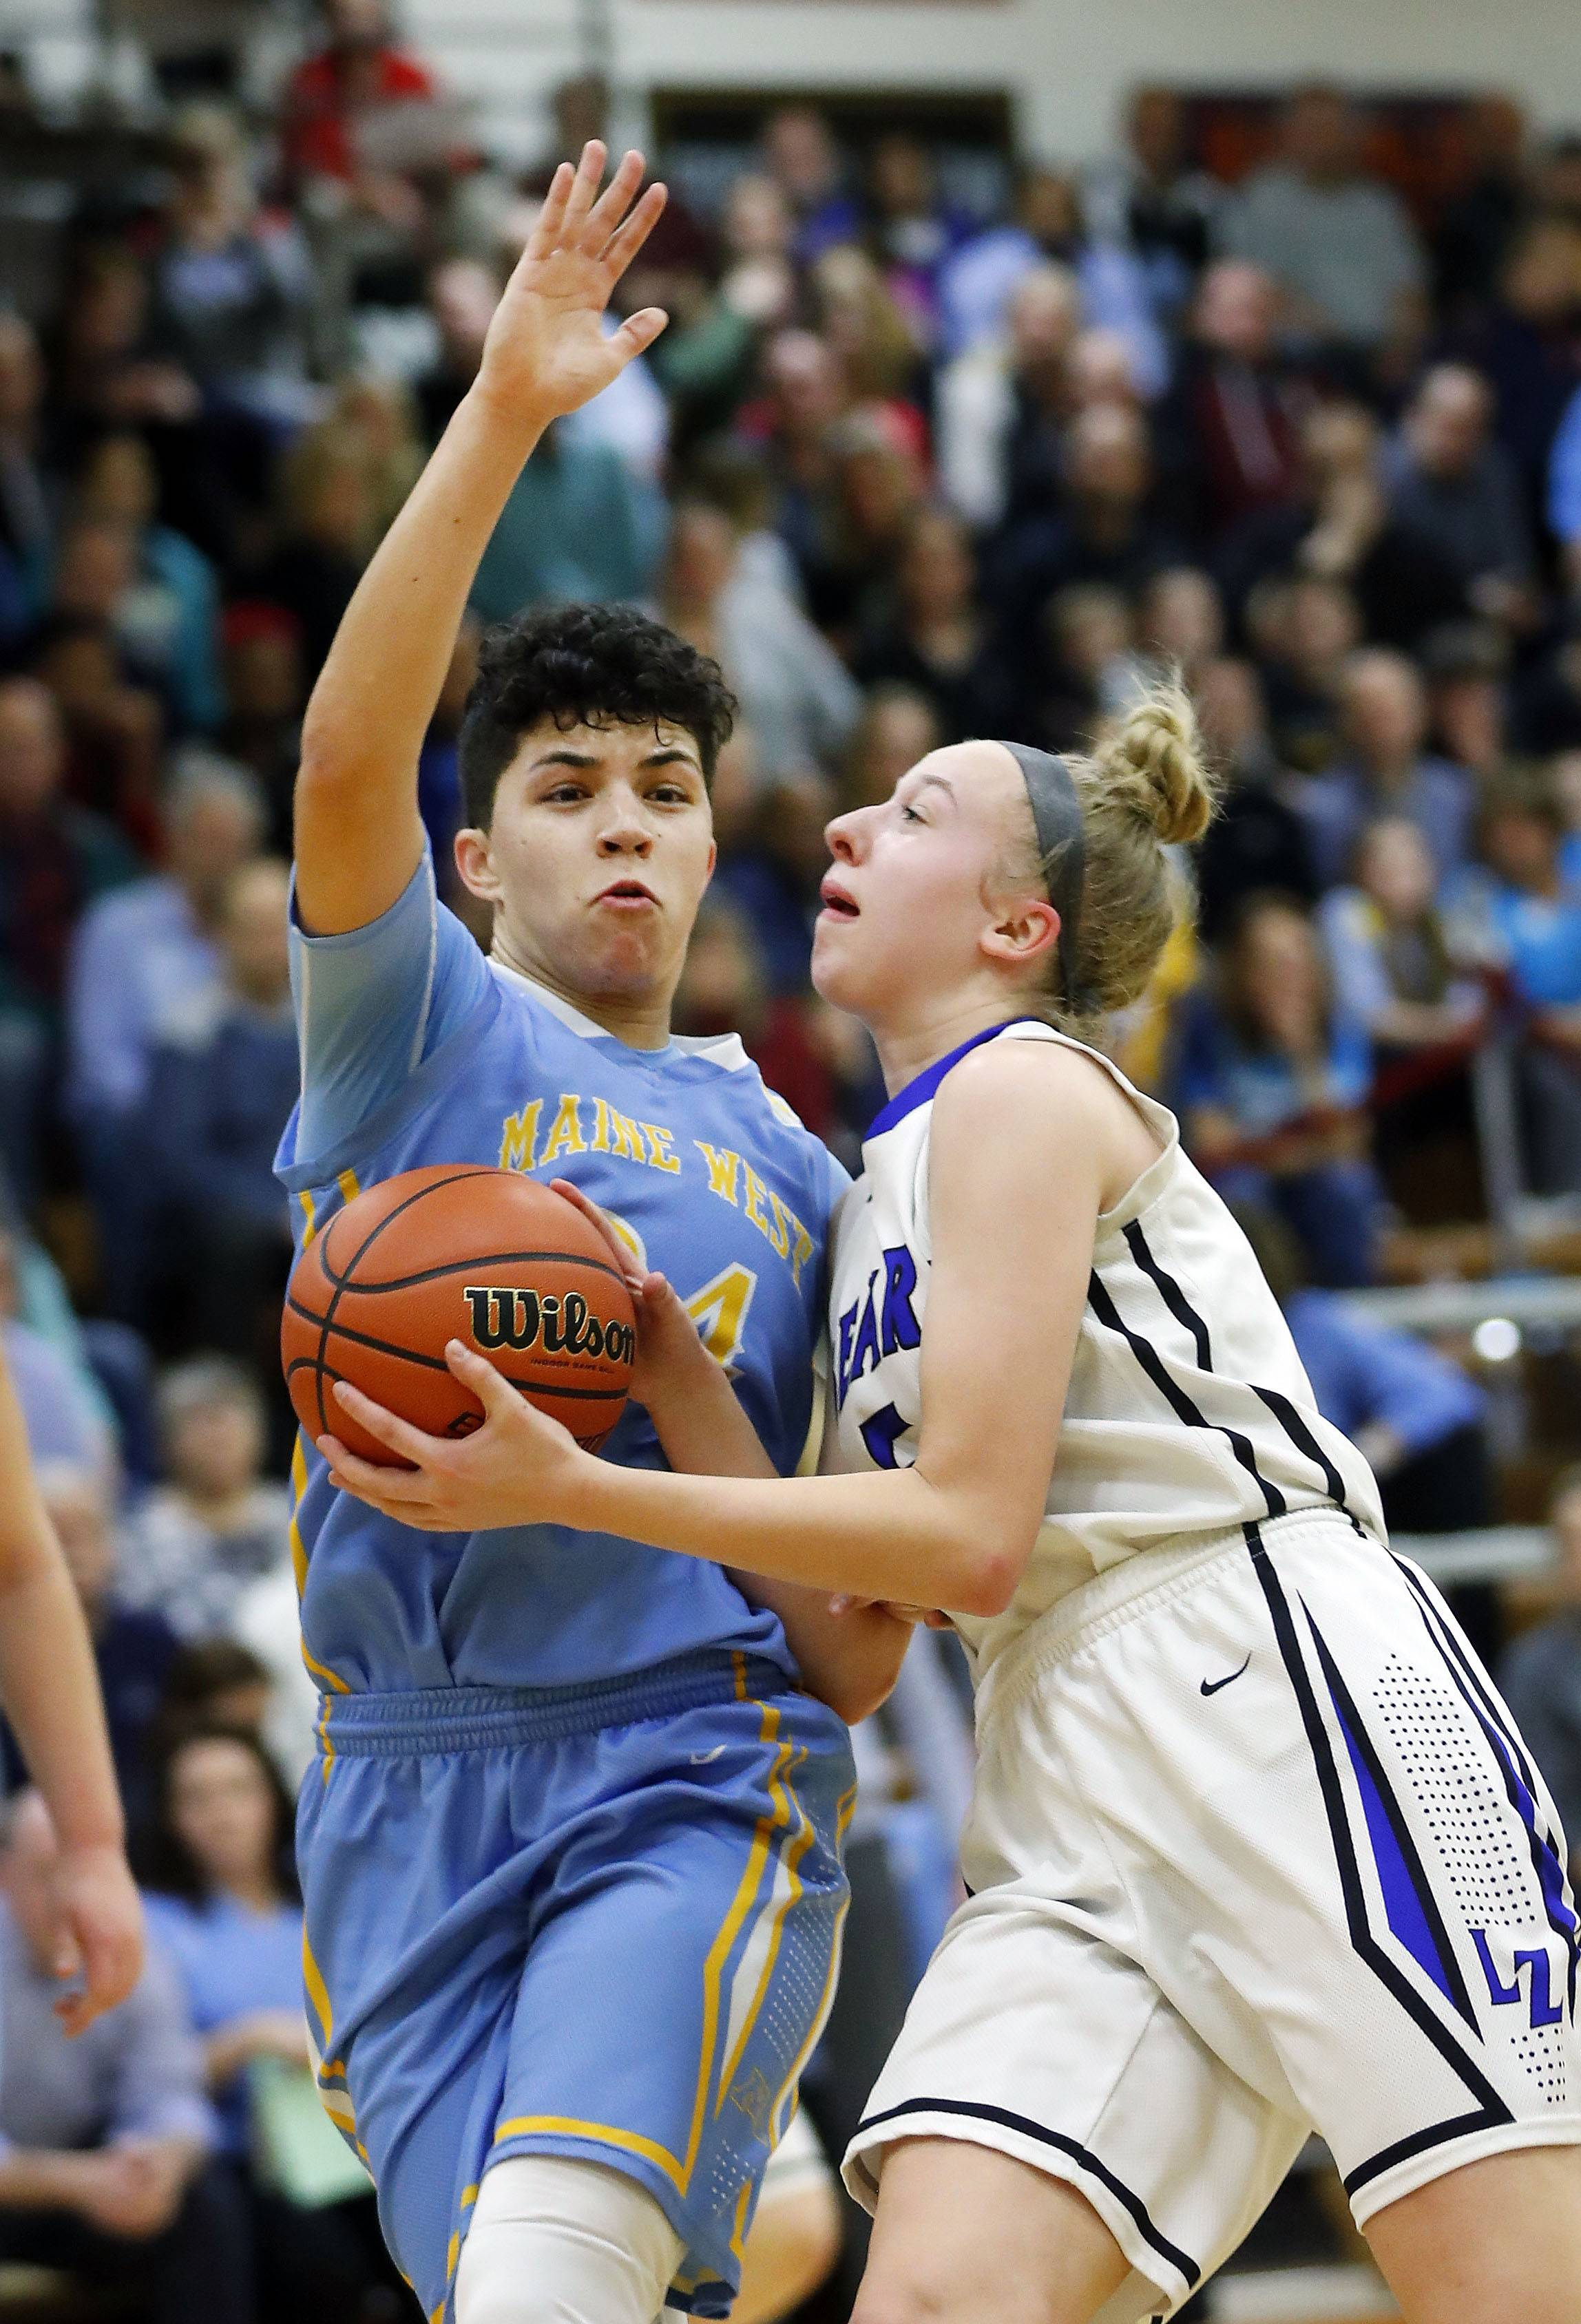 Lake Zurich's Ella Gilbertson, right, drives on Maine West's Alisa Fallon during the Class 4A Hersey supersectional in Arlington Heights on Monday.